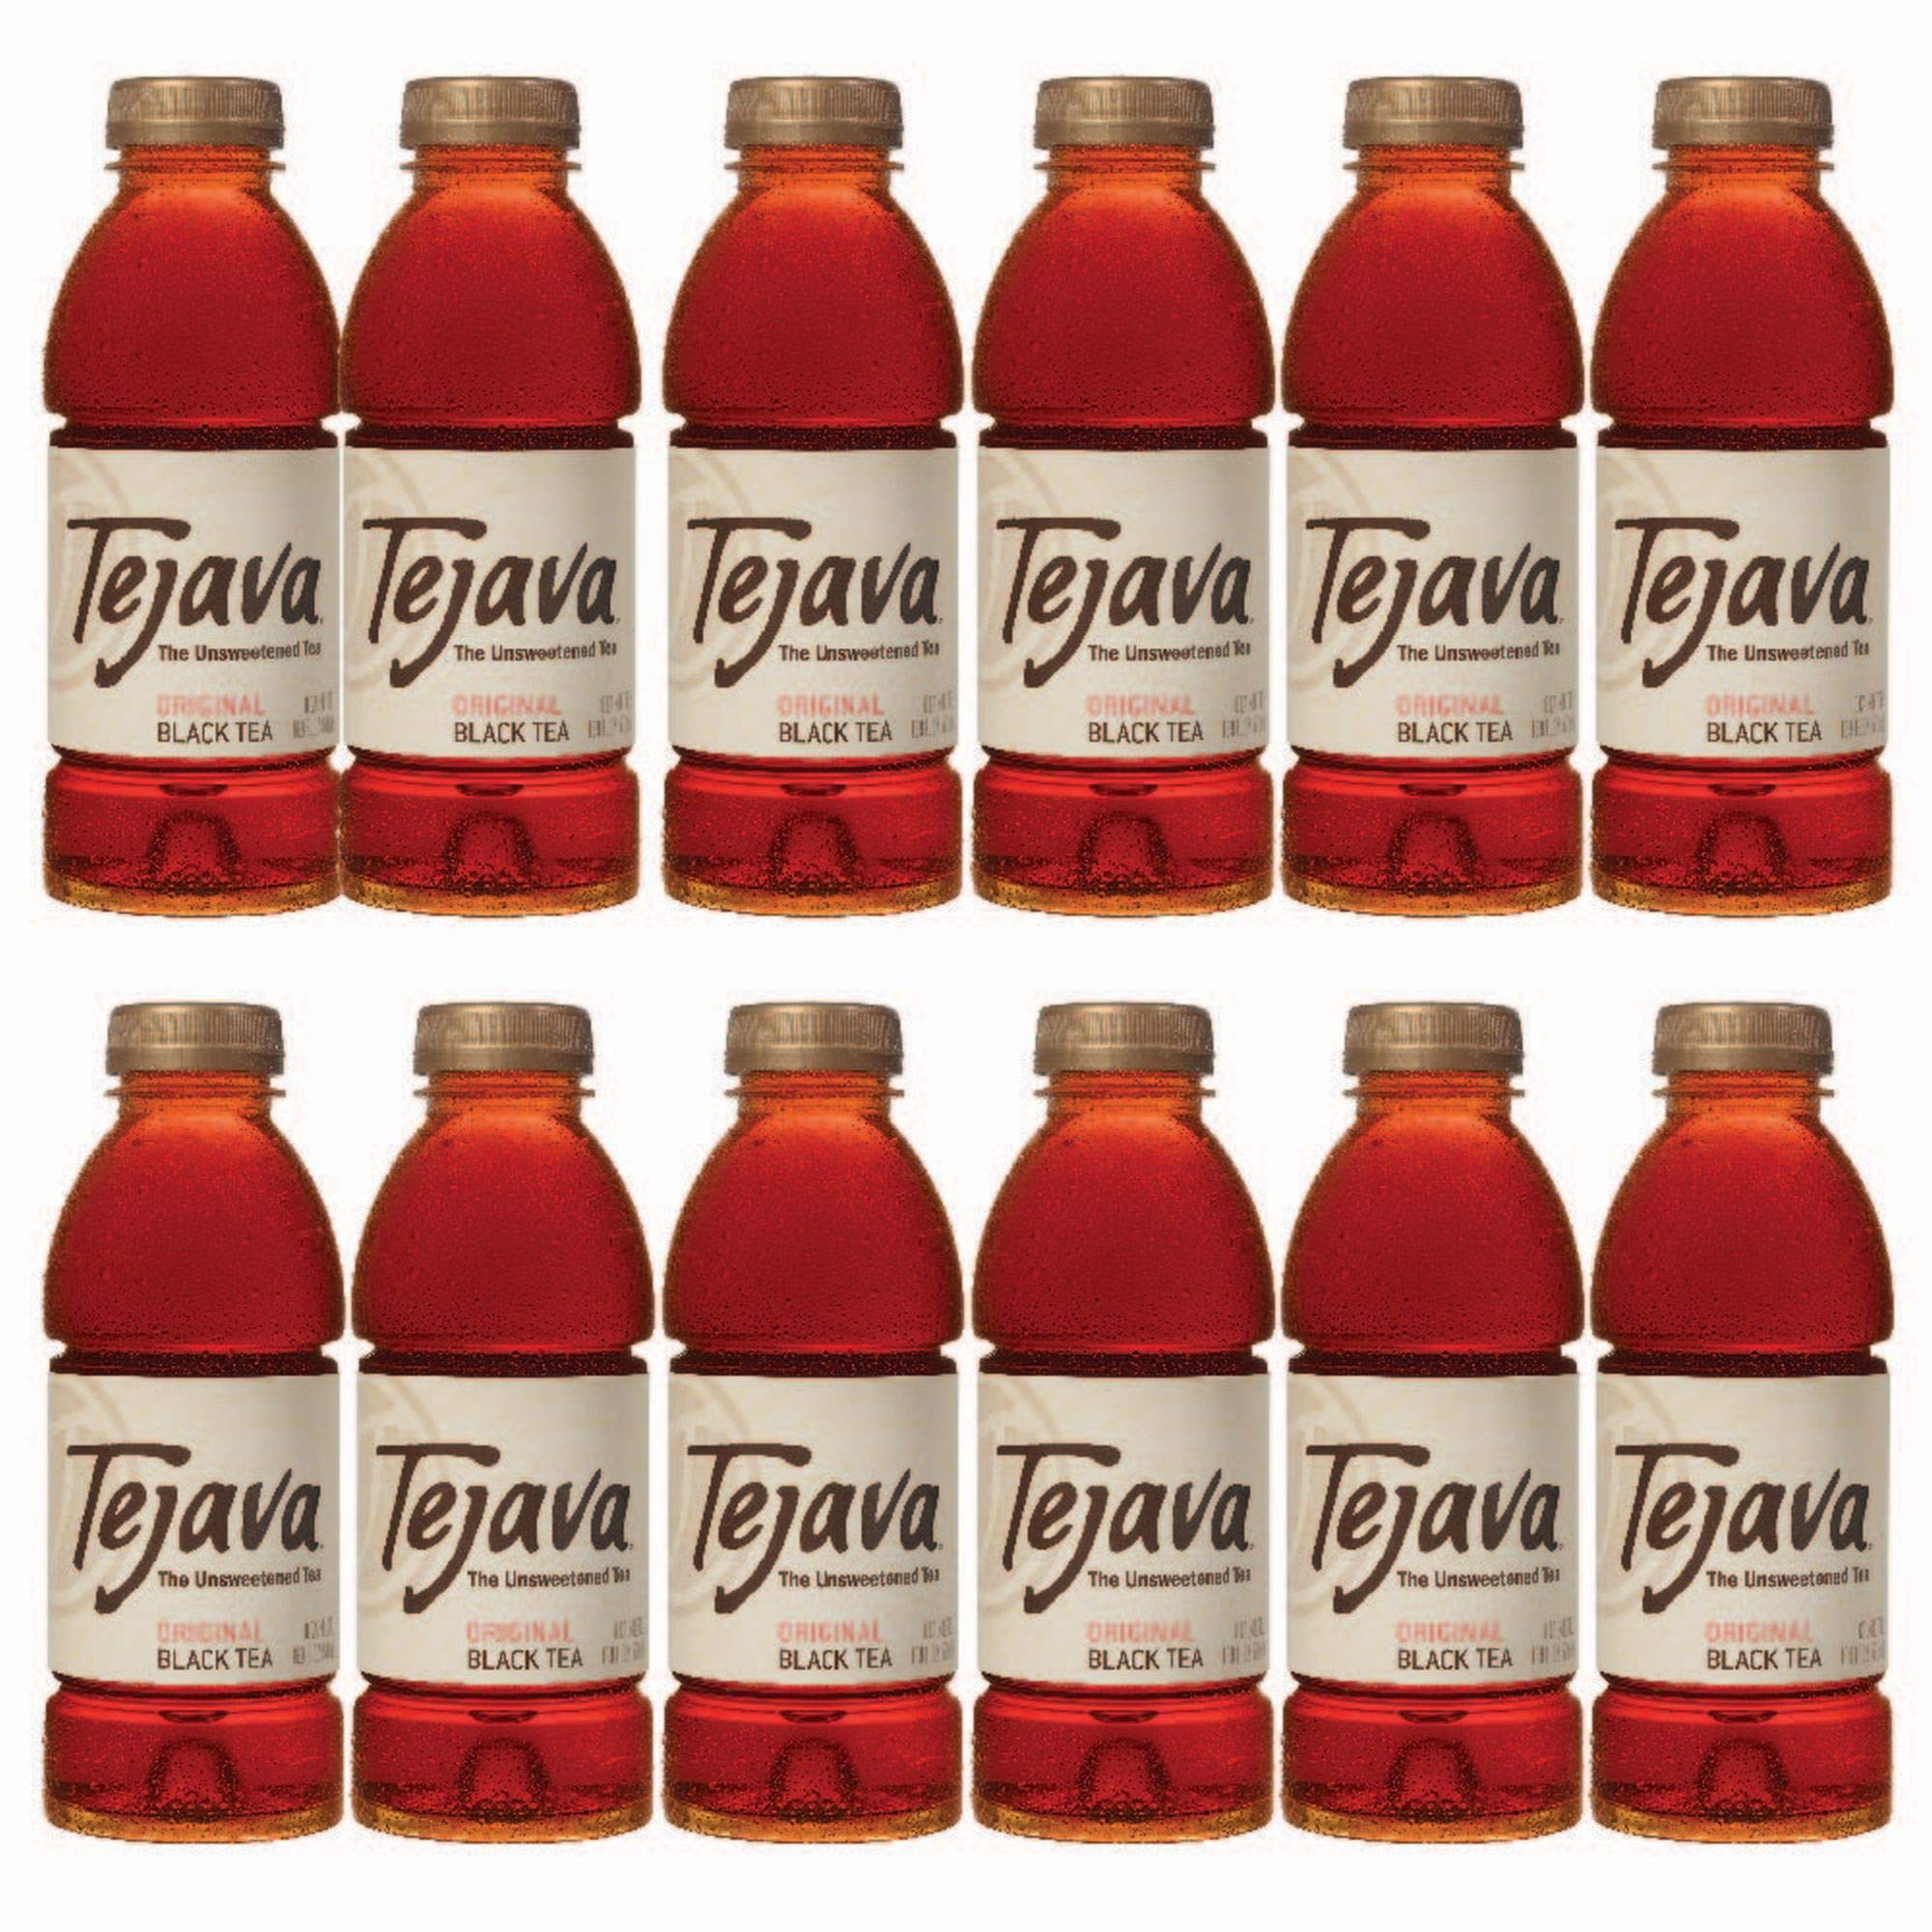 Tejava Original Unsweetened Black Iced Tea, 16.9 oz PET Bottles, Award Winning, Non-GMO-Verified, from Rainforest Alliance-Certified farms (12 Pack) by Tejava